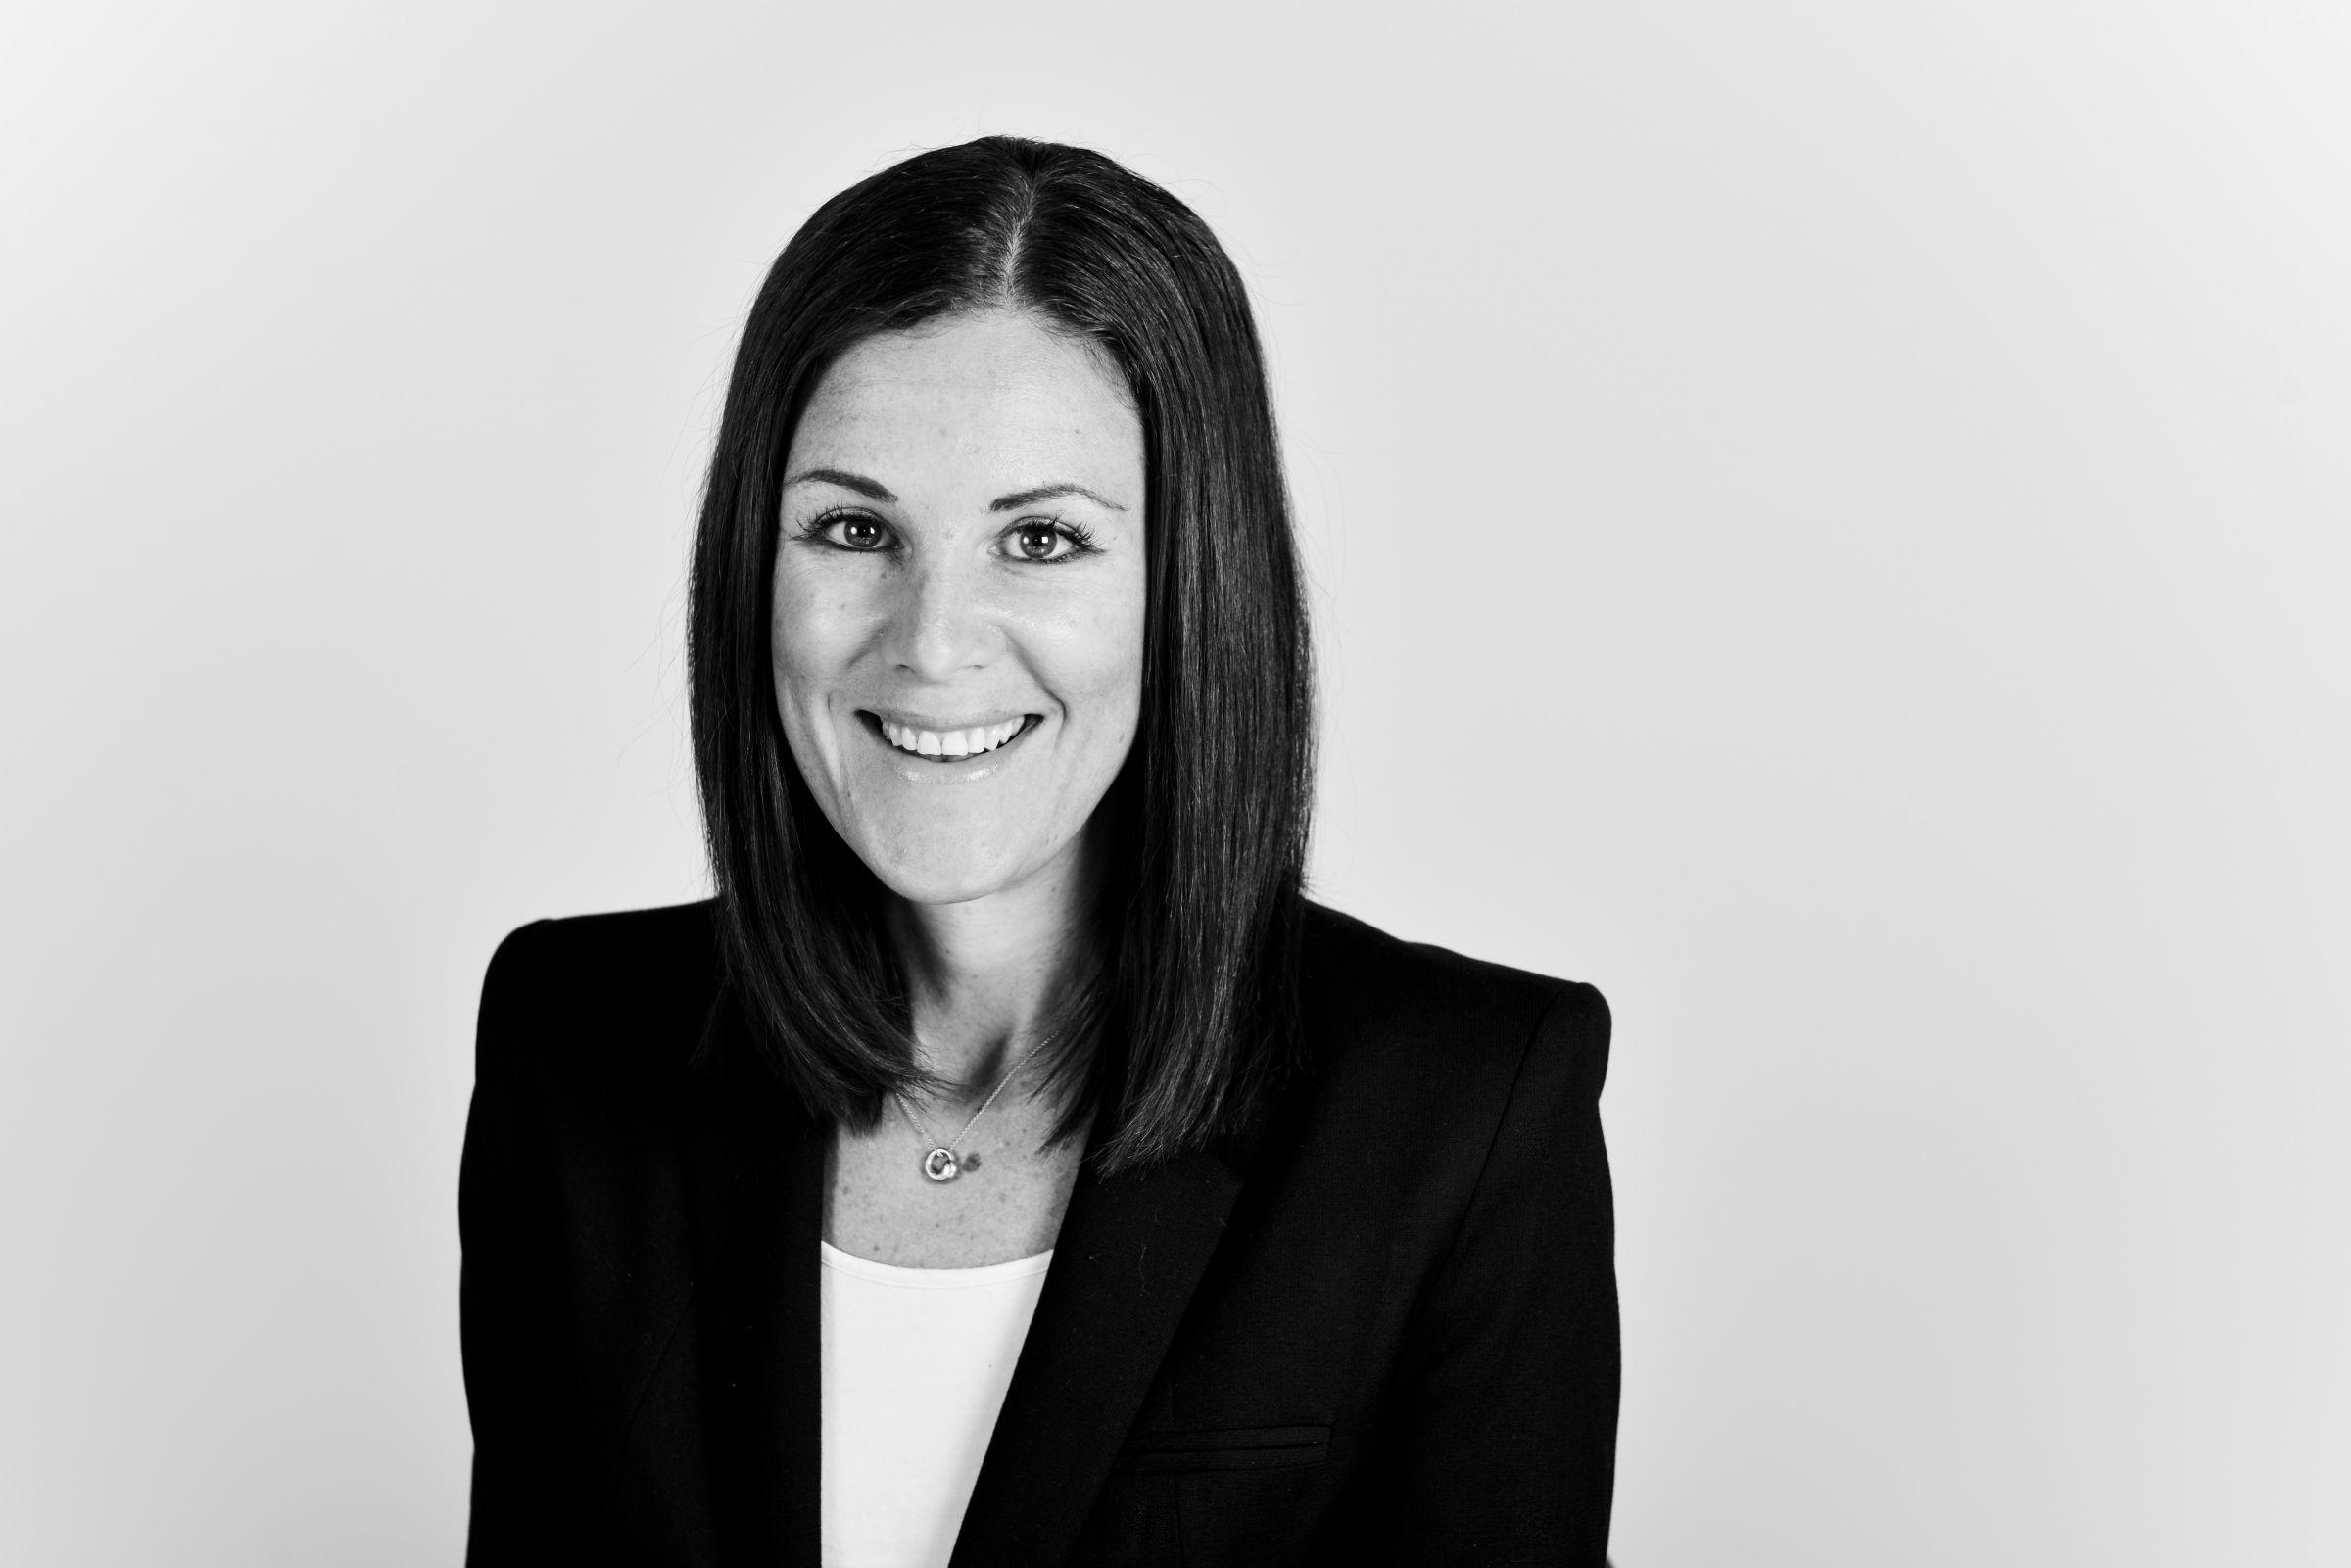 Laura Edwards, Head of Projects